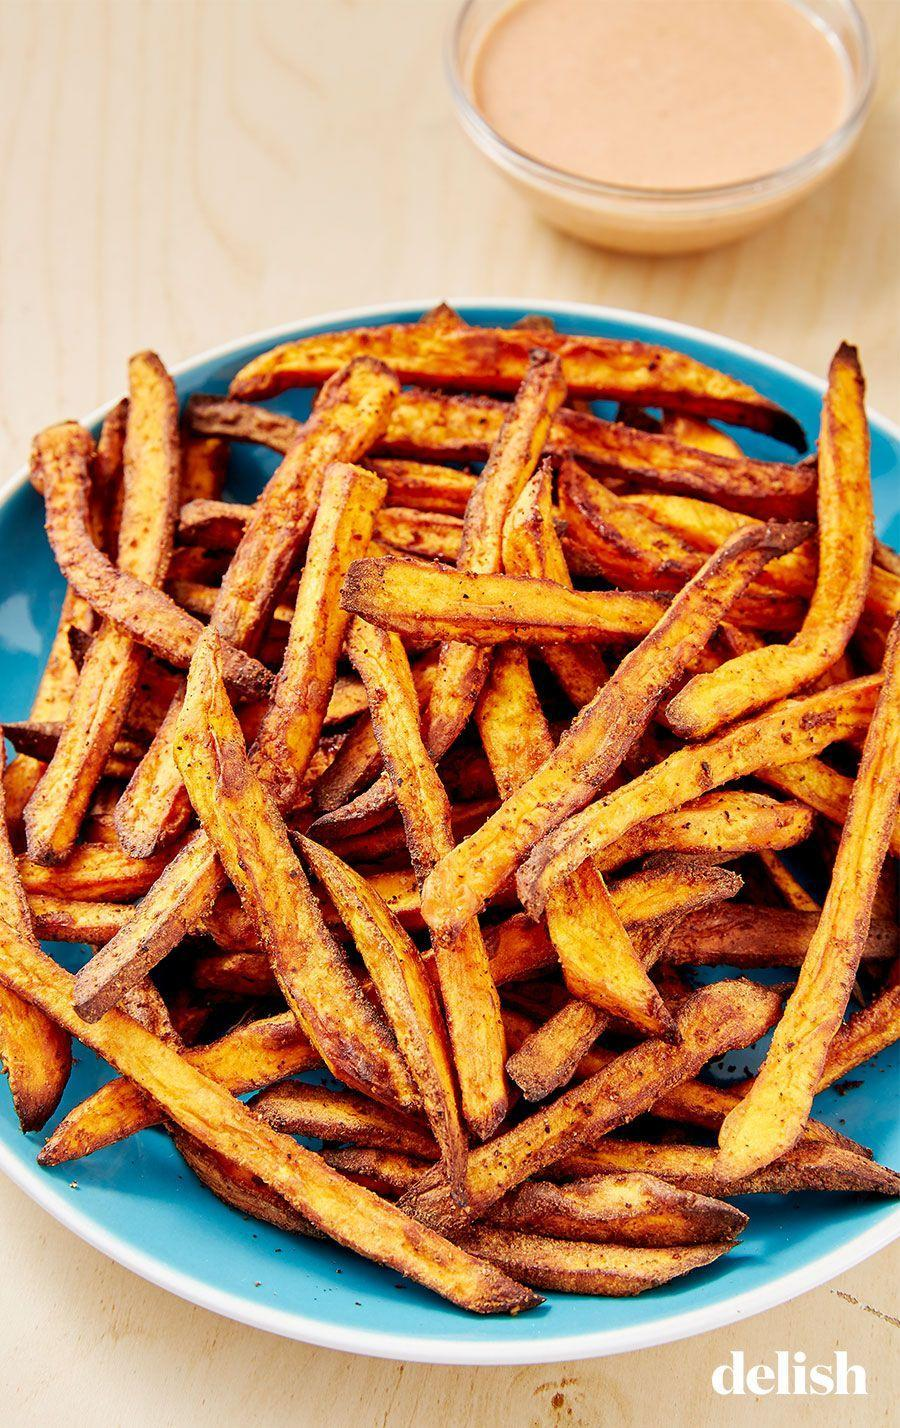 """<p>These are way crispier (and faster) than oven-baked sweet potato fries. </p><p>Get the recipe from <a href=""""https://www.delish.com/cooking/recipe-ideas/a28136123/air-fryer-sweet-potato-recipe/"""" rel=""""nofollow noopener"""" target=""""_blank"""" data-ylk=""""slk:Delish"""" class=""""link rapid-noclick-resp"""">Delish</a>.</p>"""